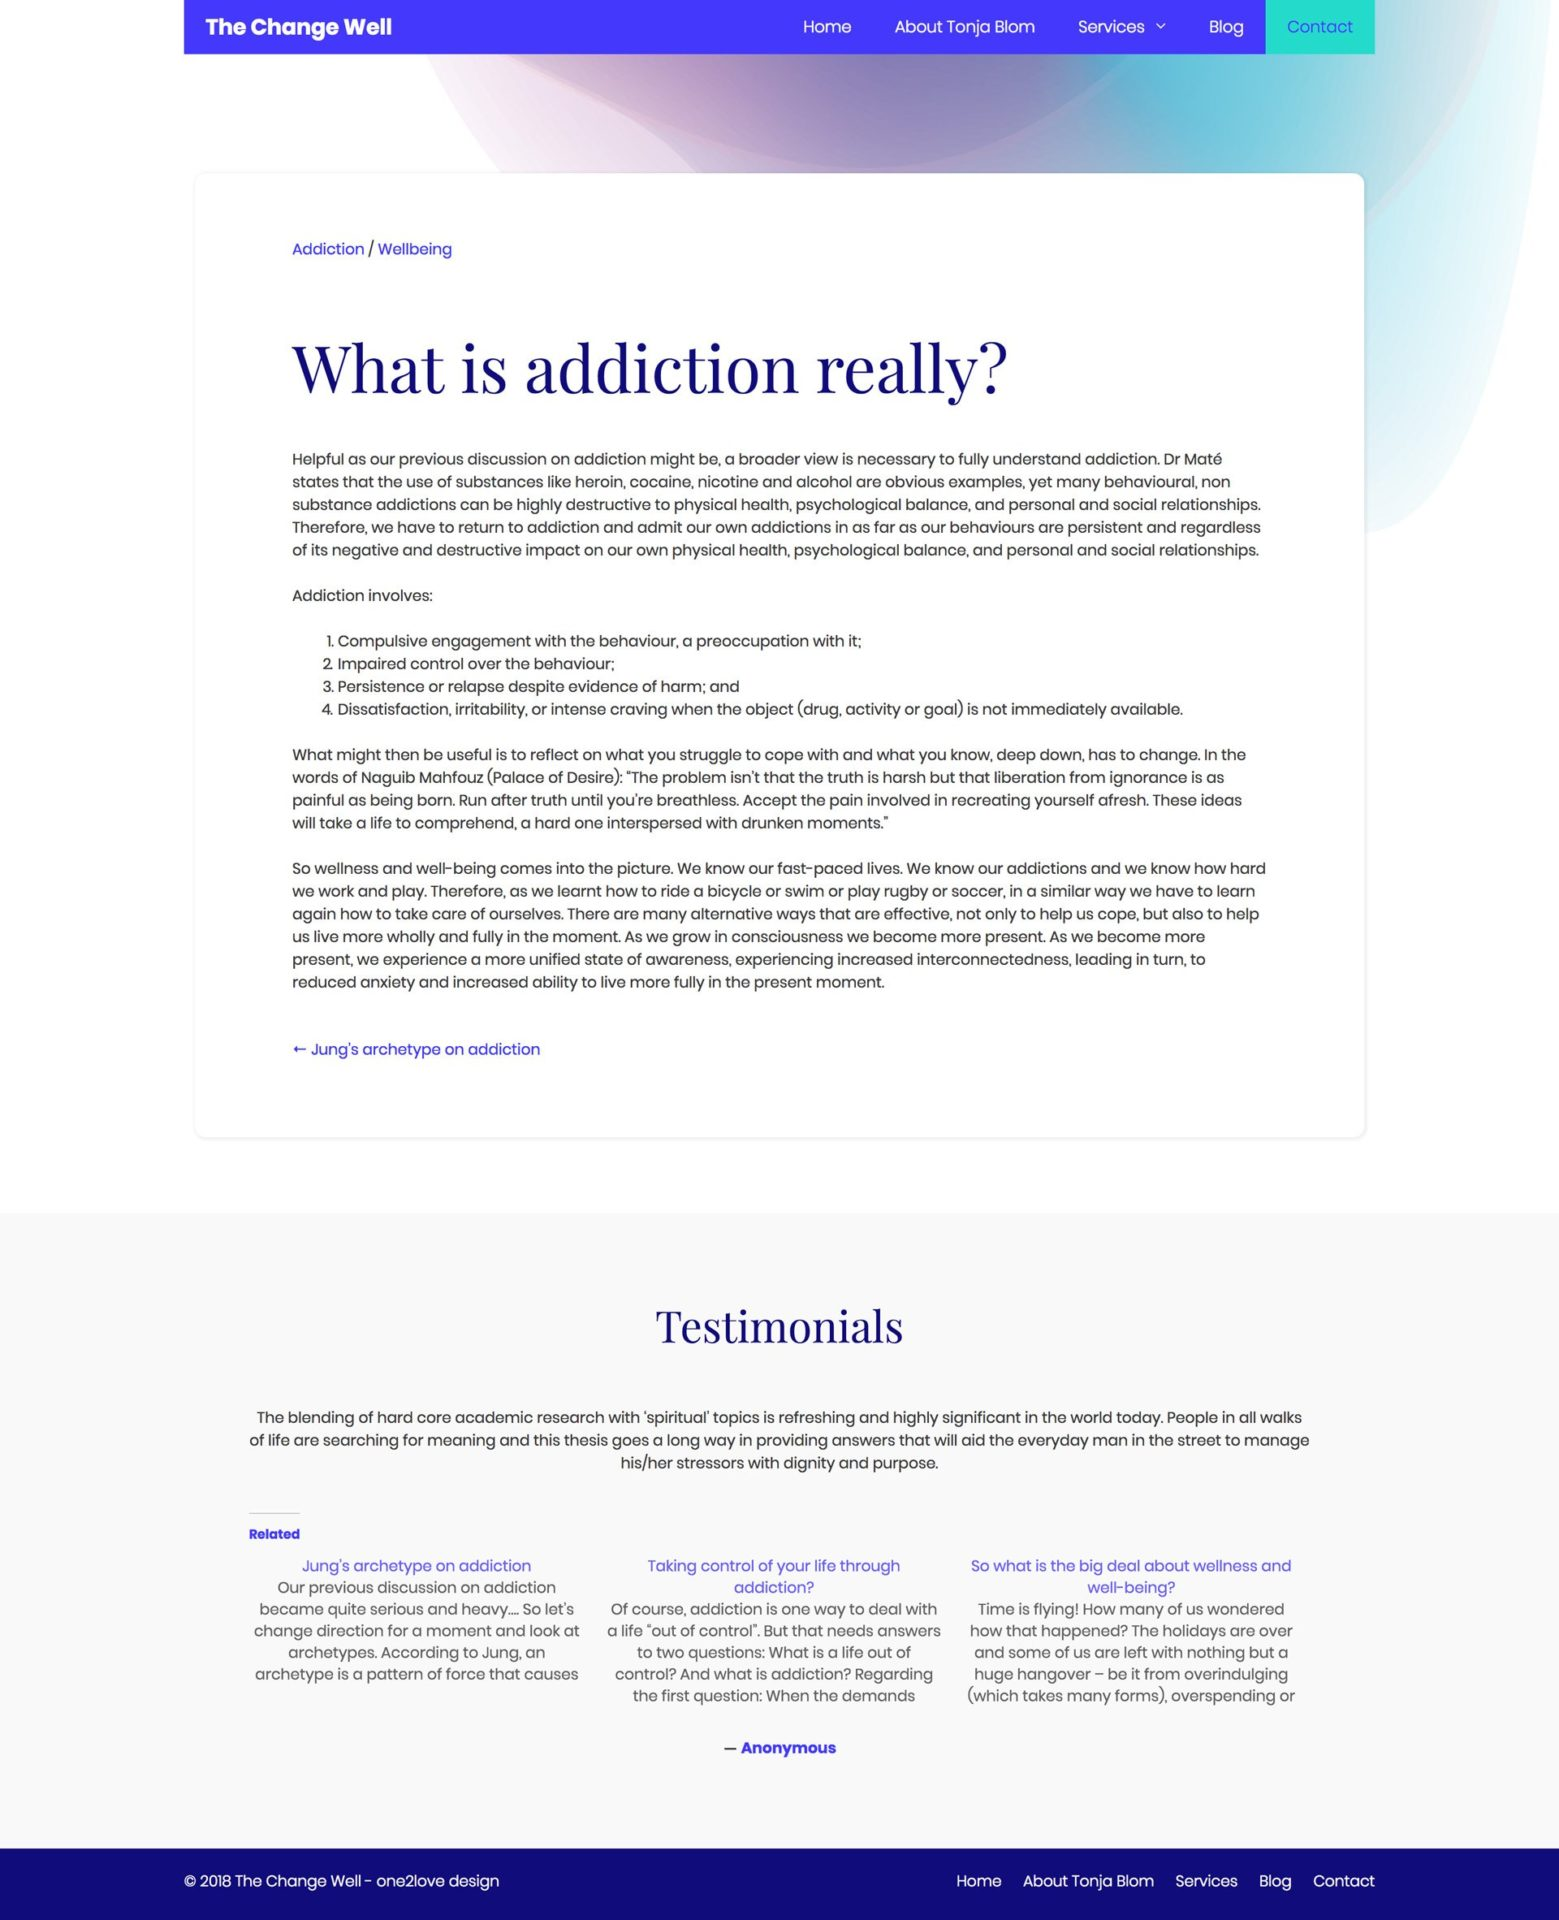 The Change Well Article on Addiction